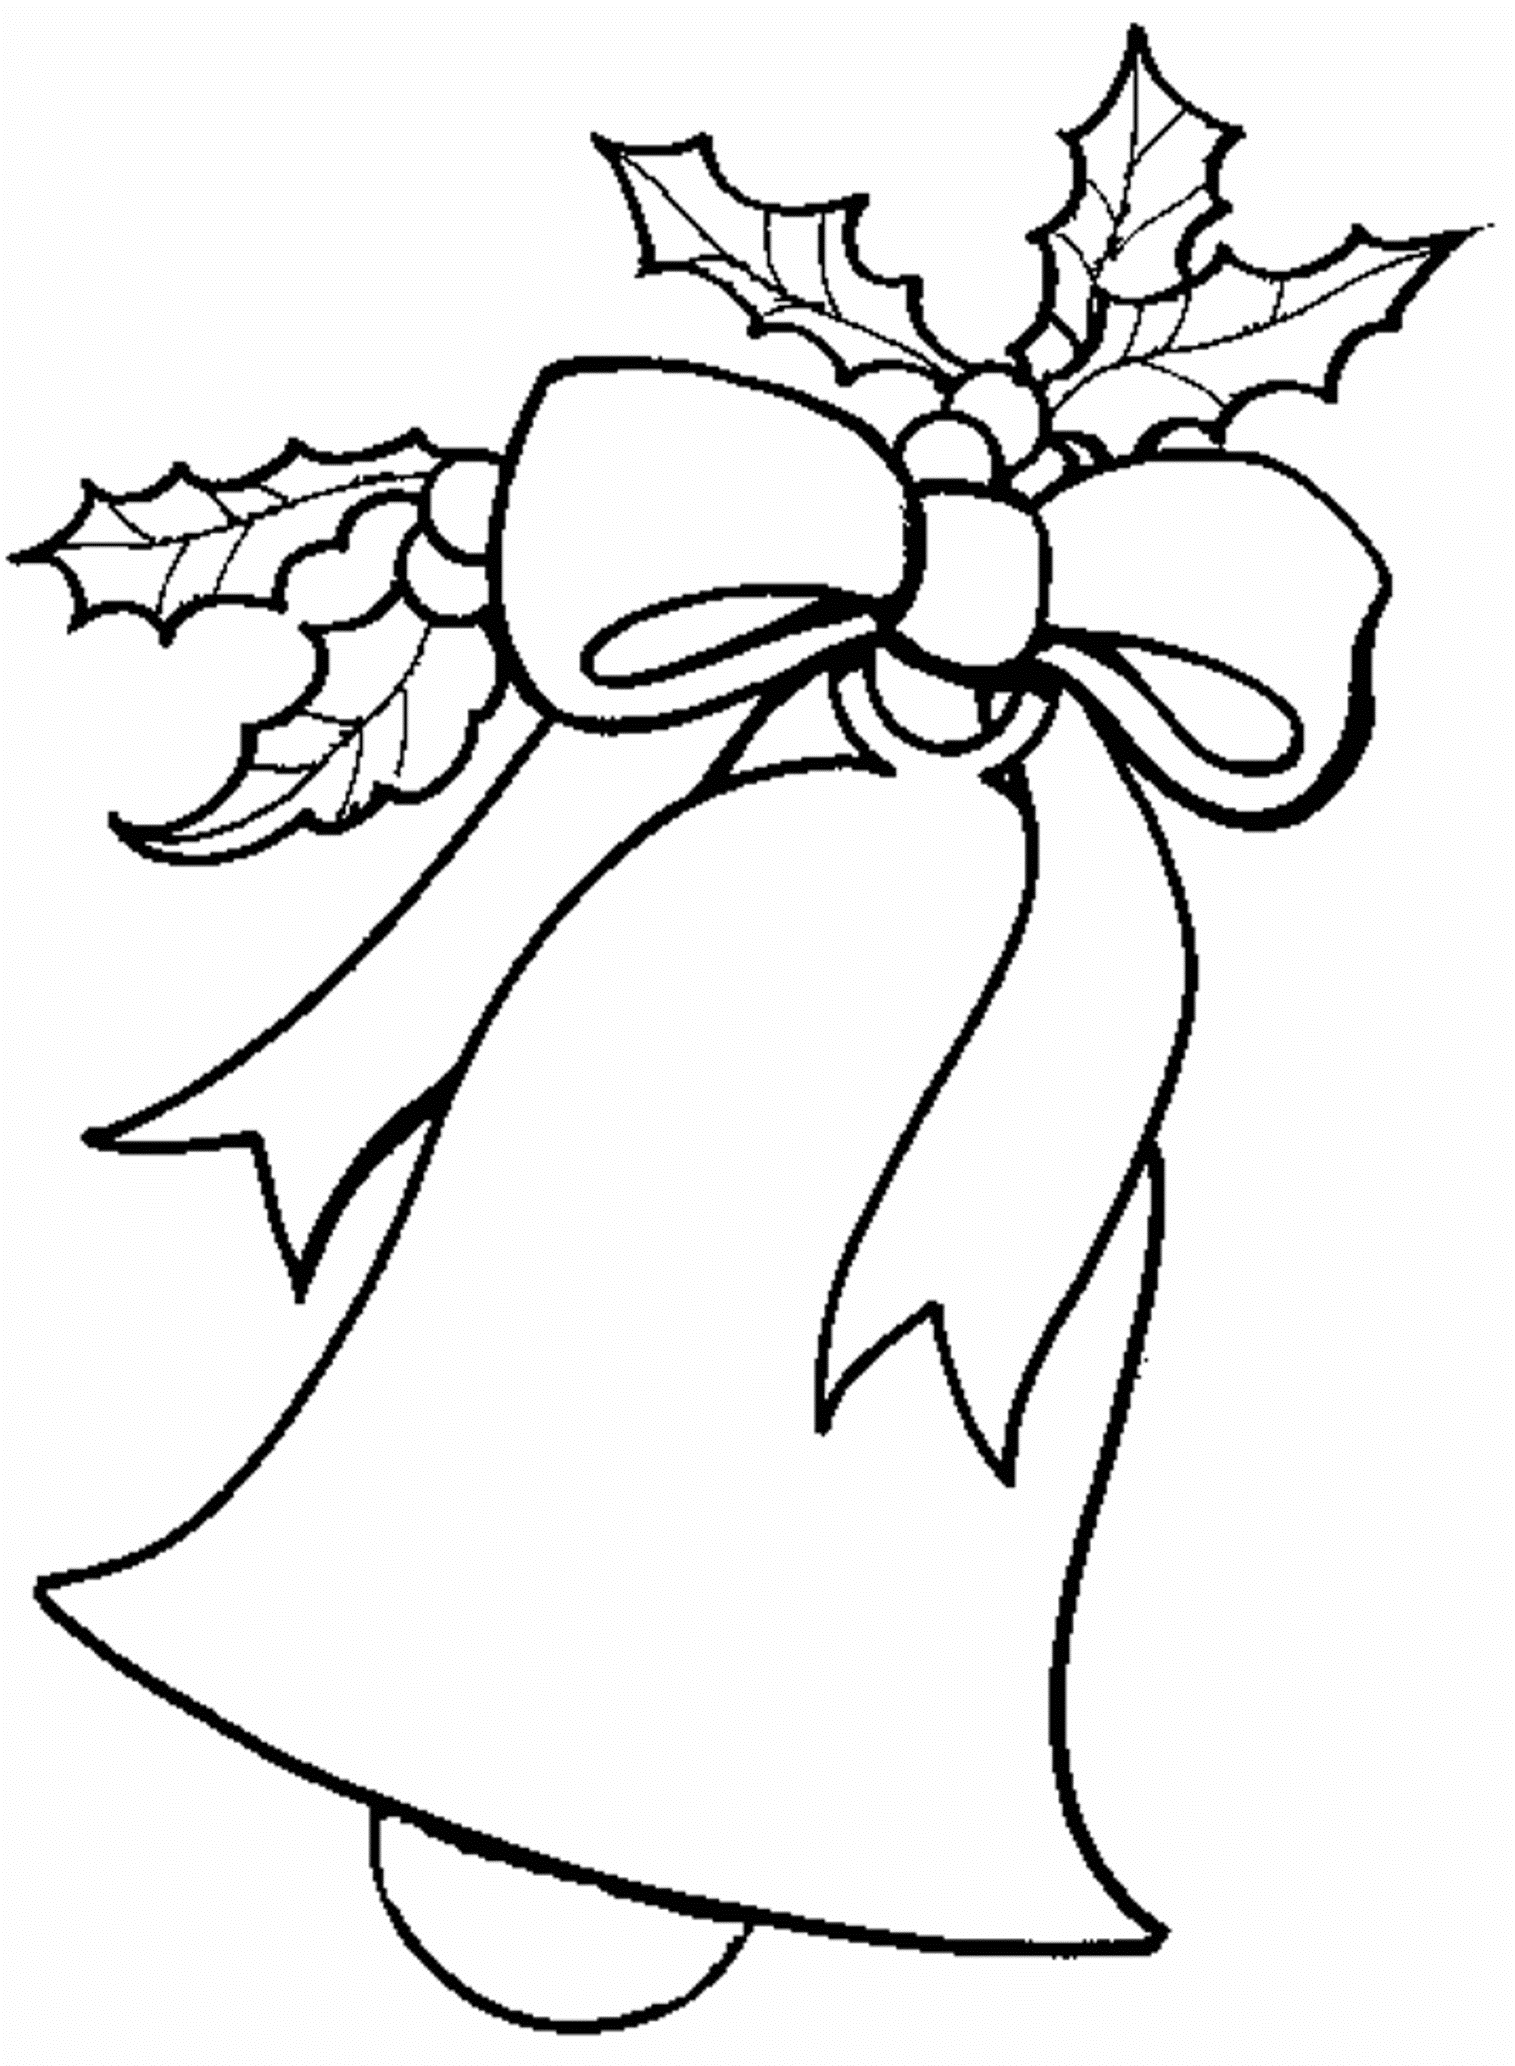 Christmas Black And White Coloring Pictures.